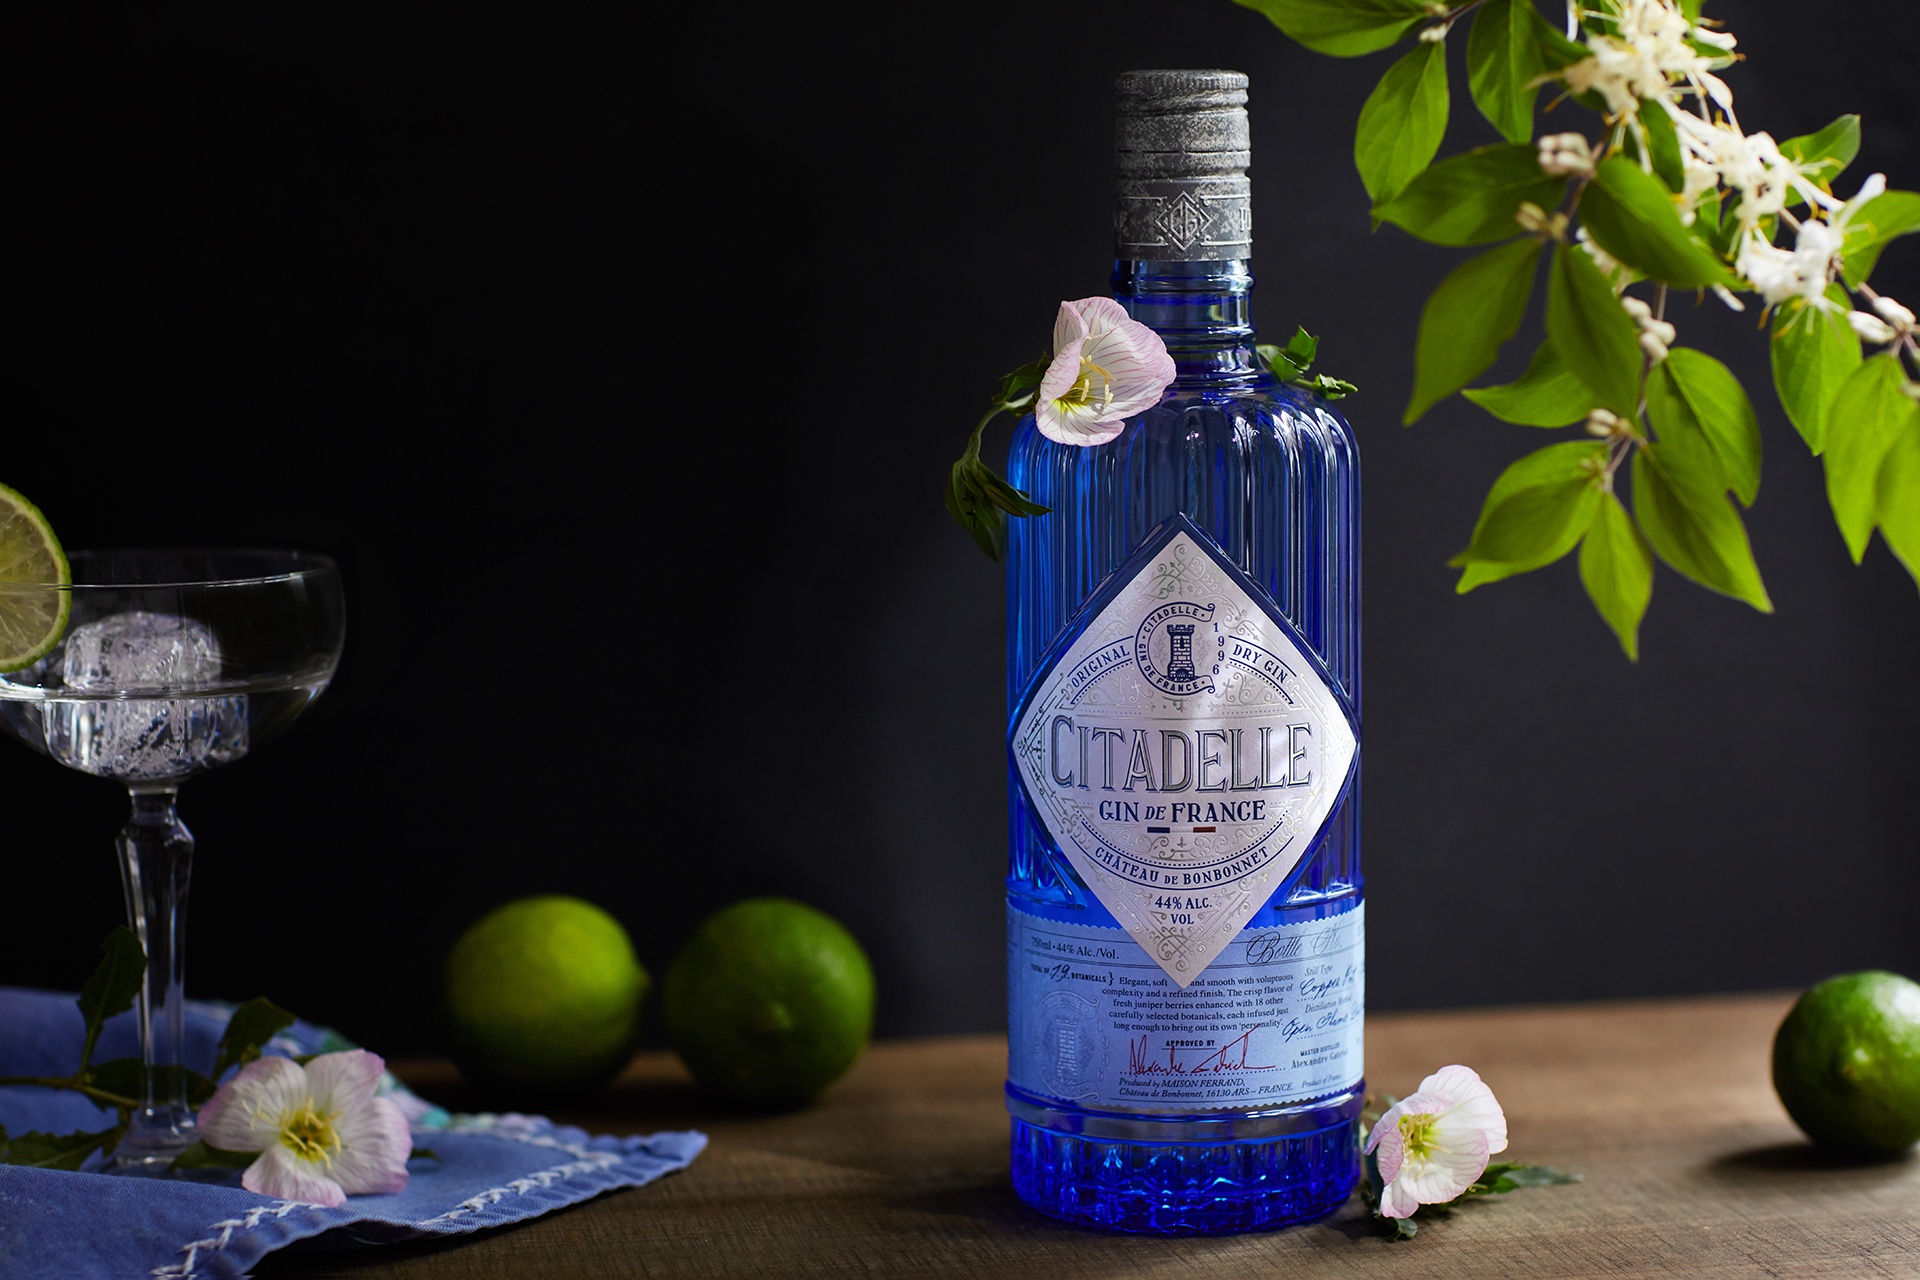 Gin bottle with glass, limes, and flowers, styled and photographed by Kate Benson, professional food and beverage photographer.